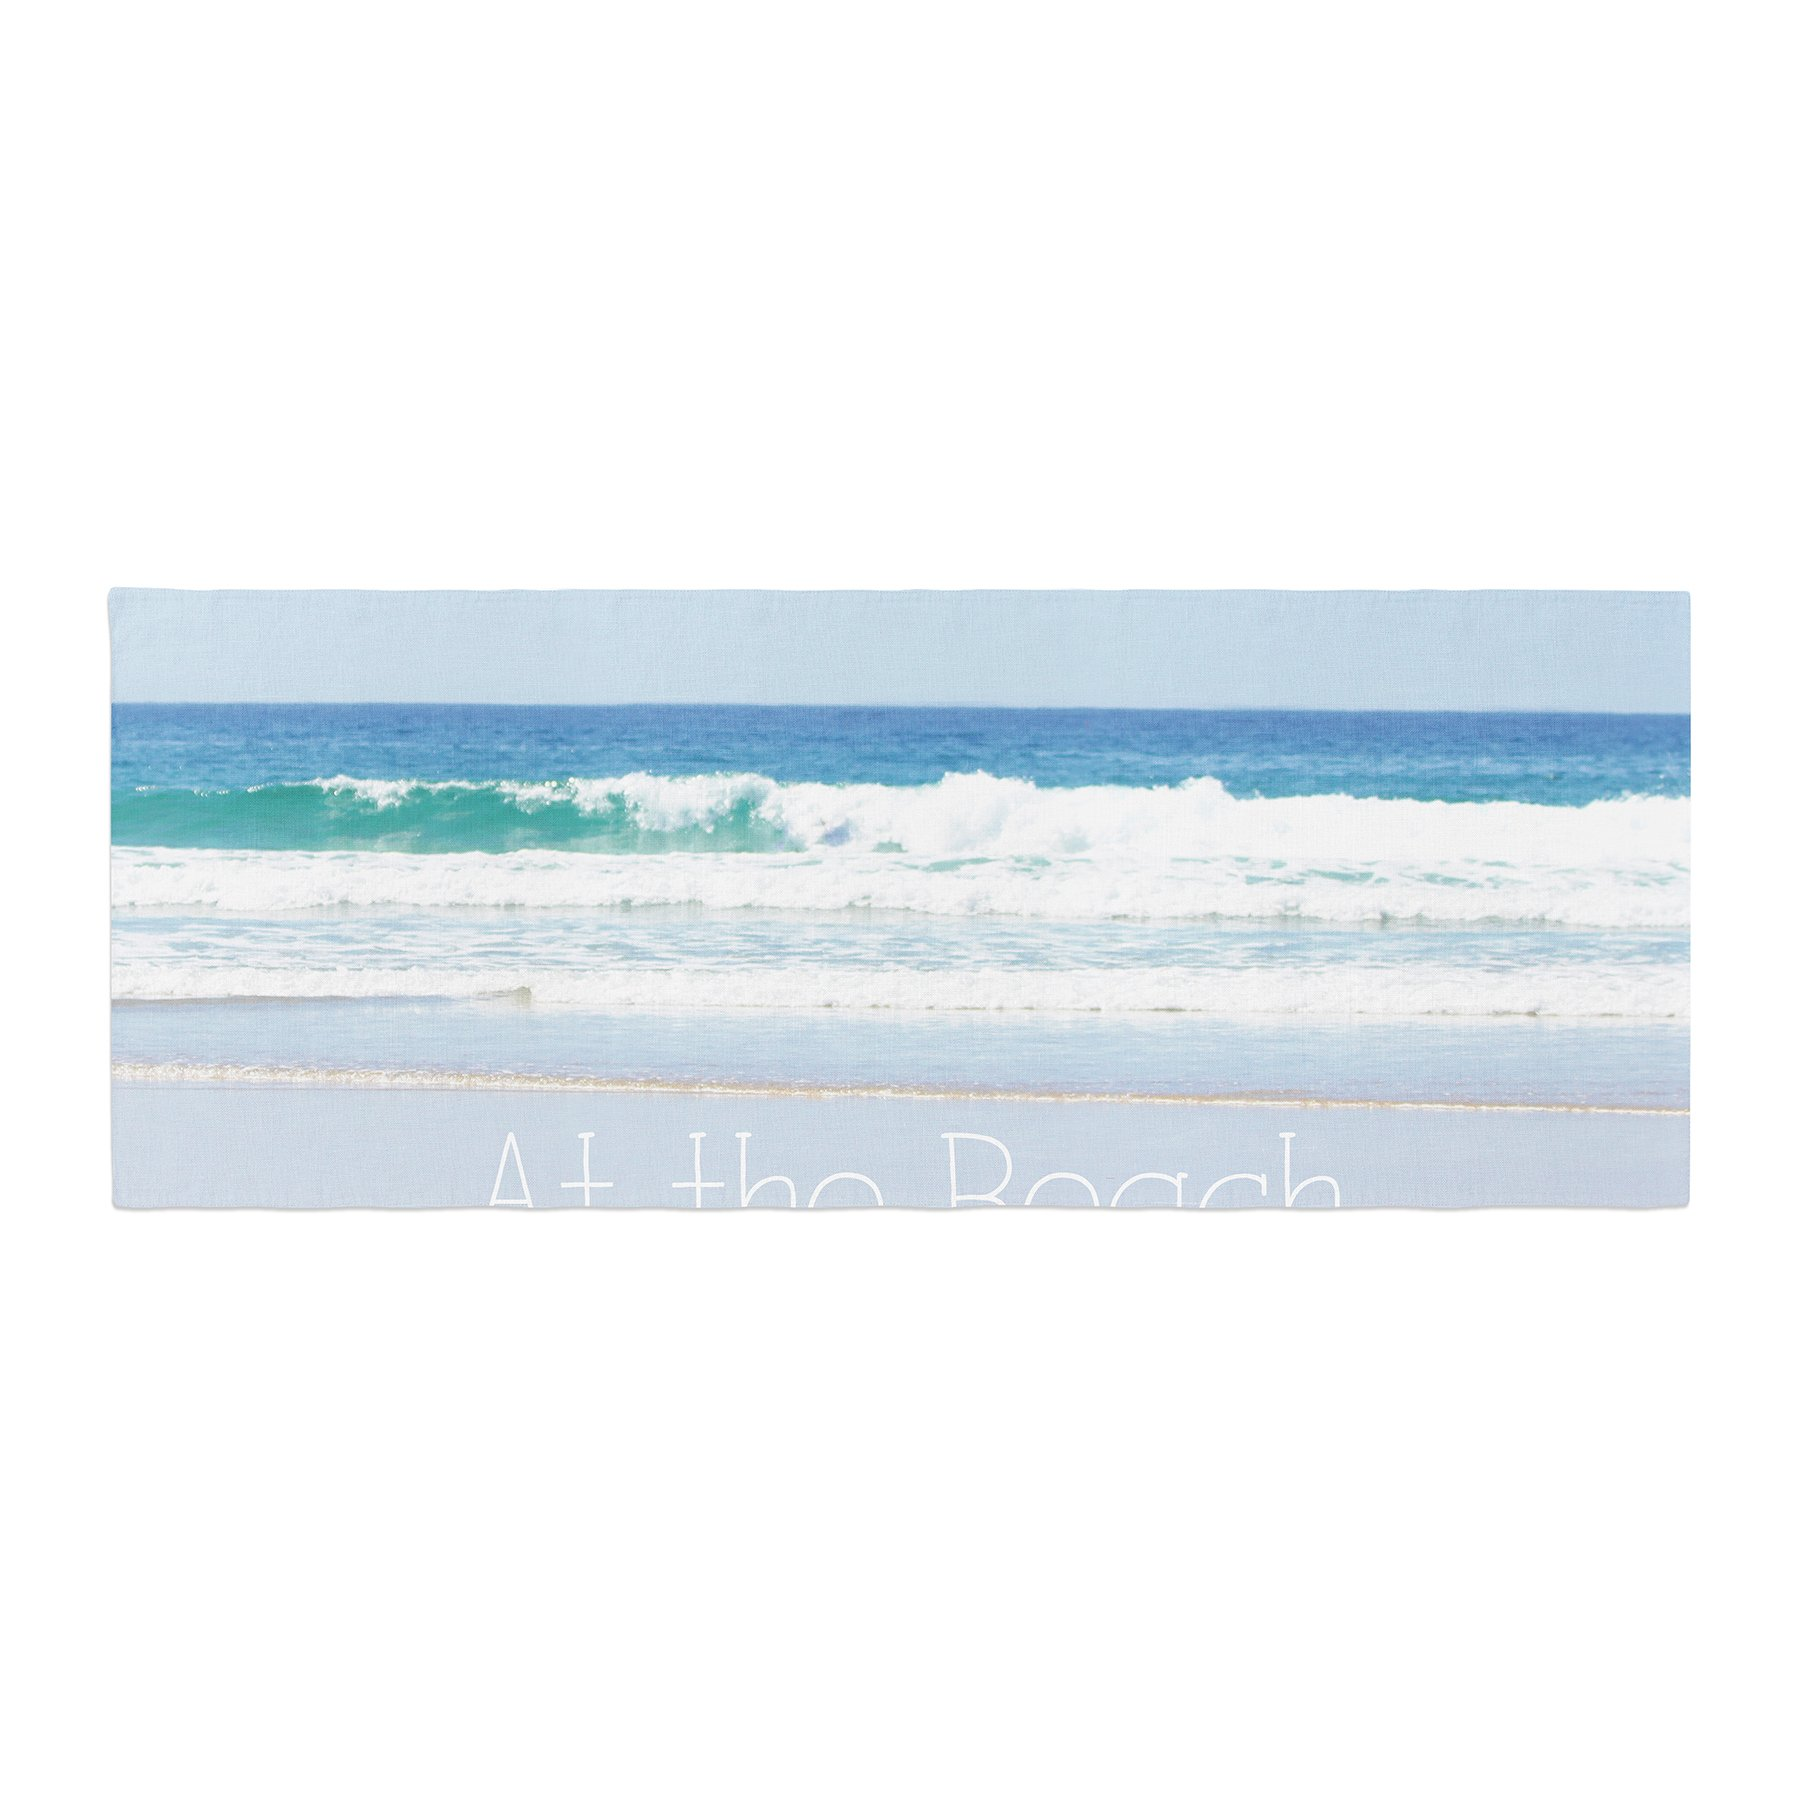 Kess InHouse Sylvia Coomes Life Is Better At The Beach Tan Blue Bed Runner, 34'' x 86''